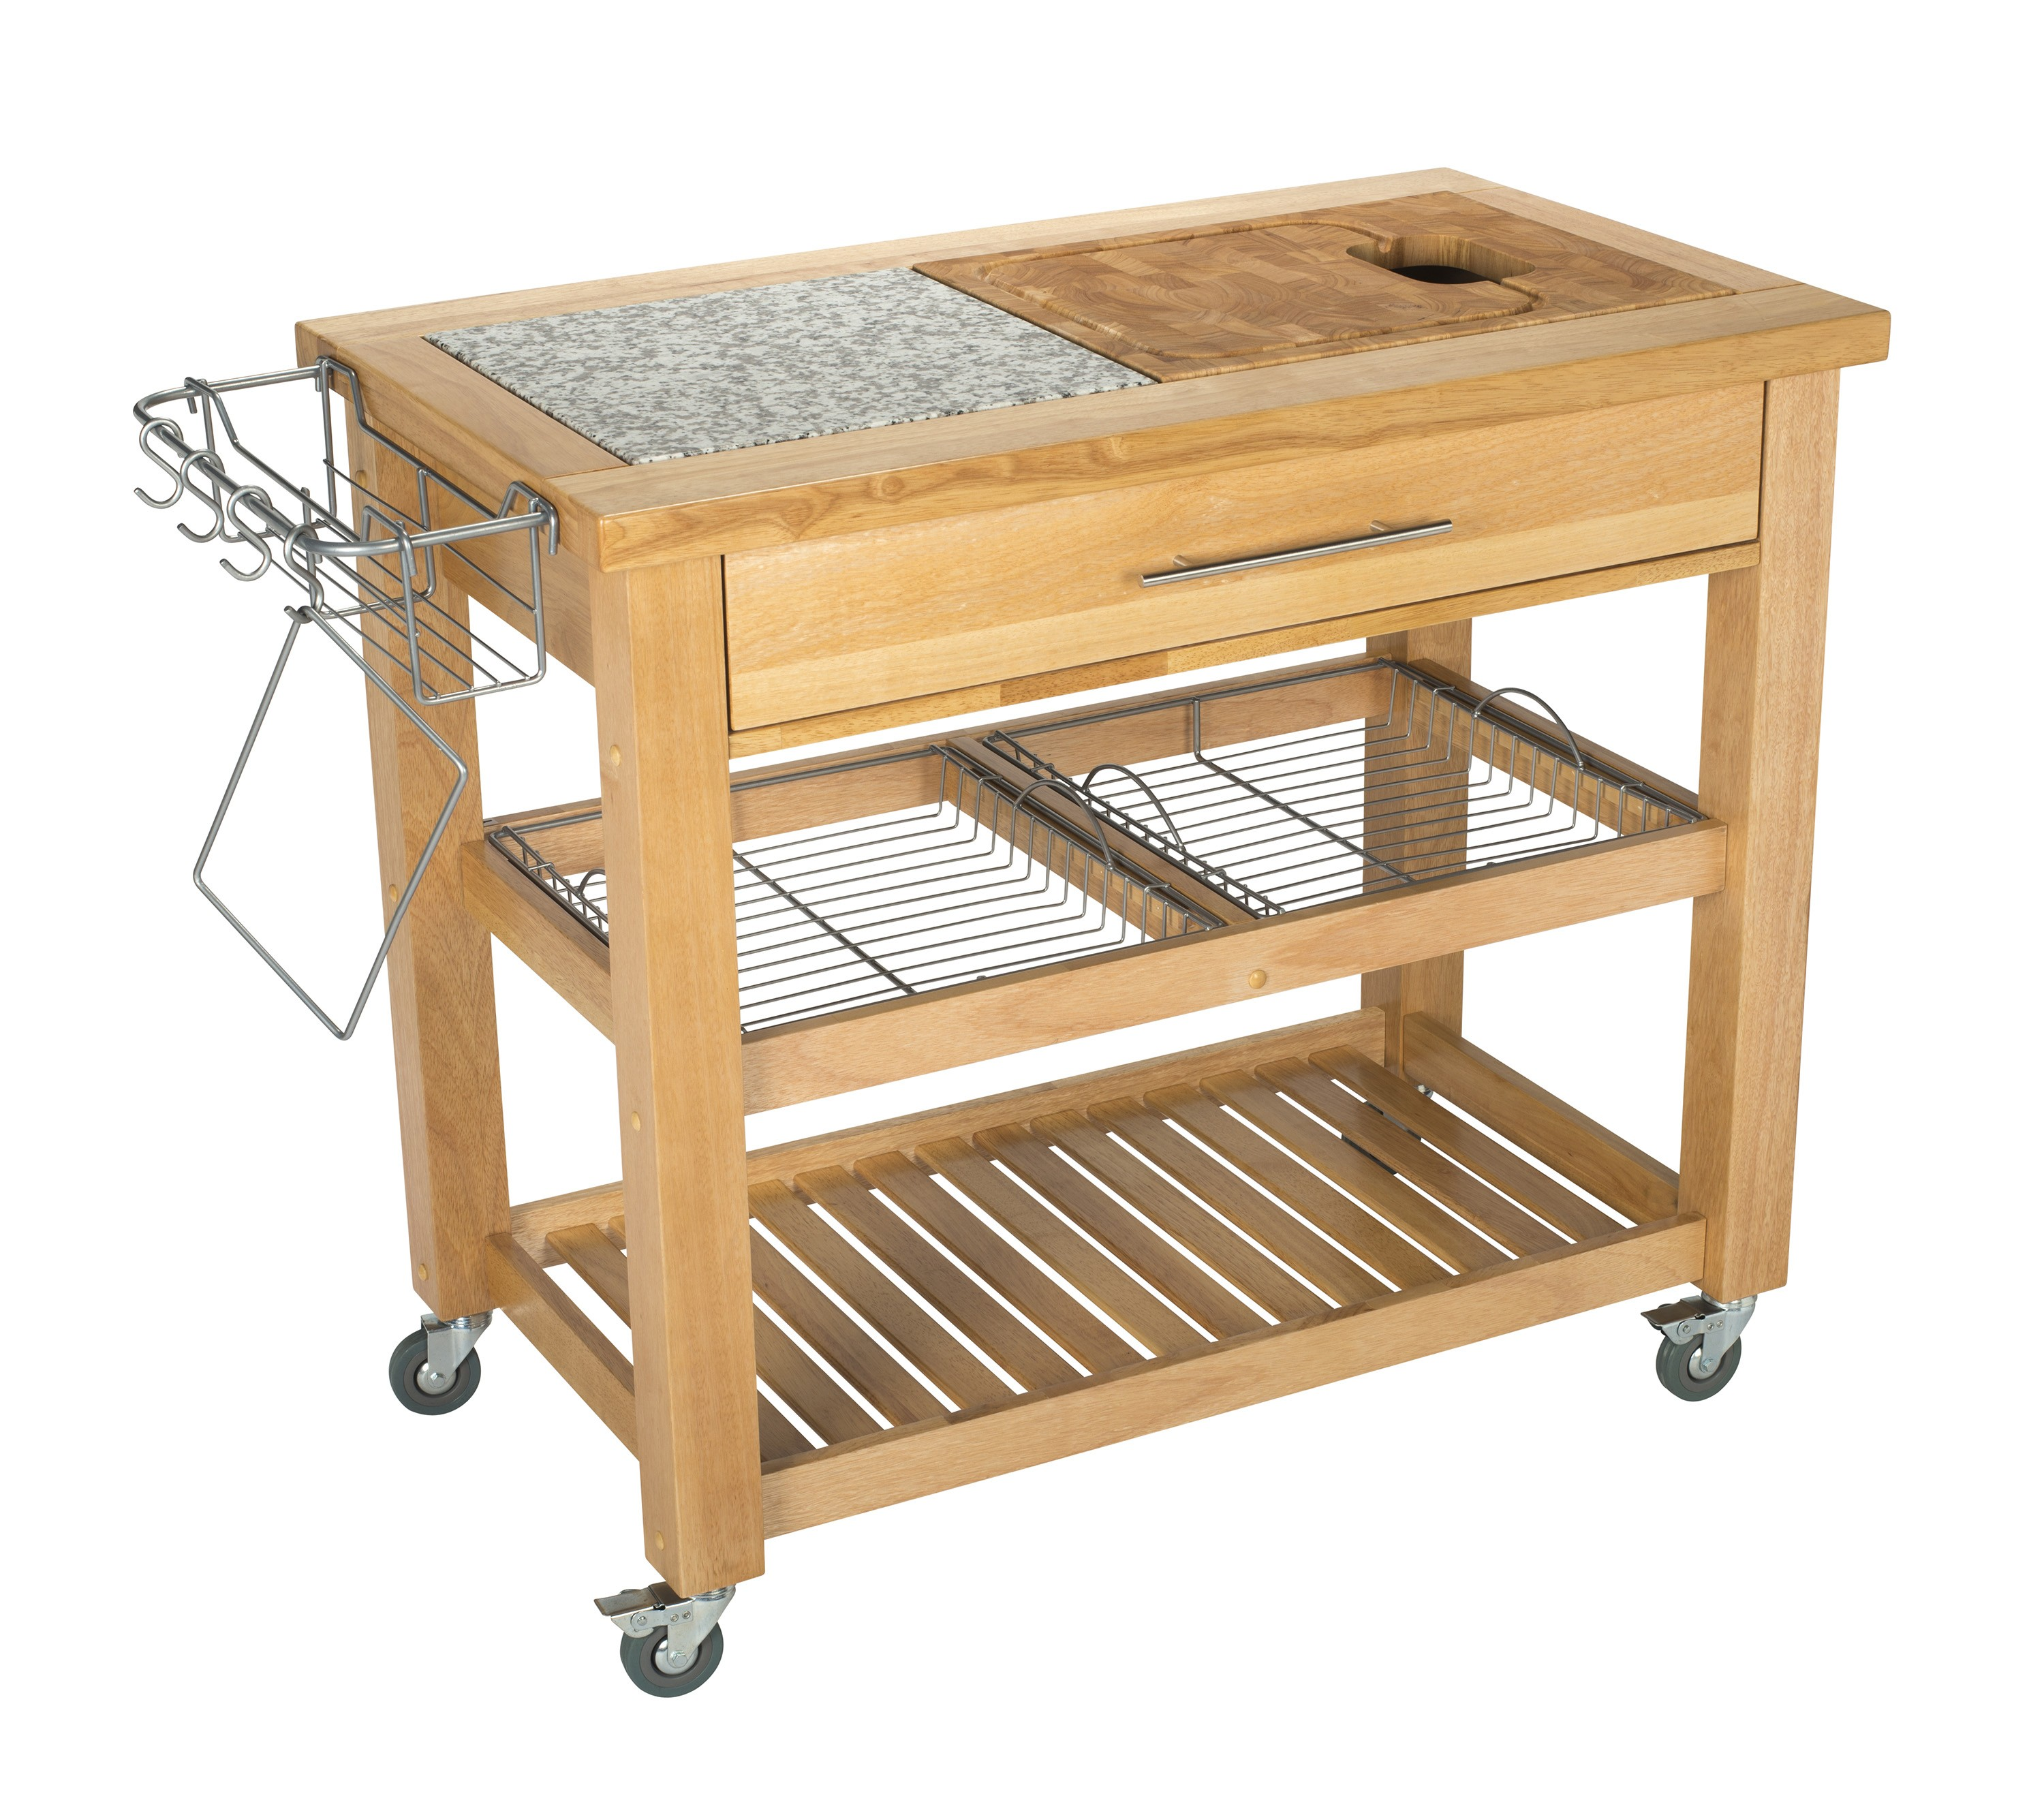 Chris & Chris Granite & Rubberwood-Top Work Station, 24x40, Natural